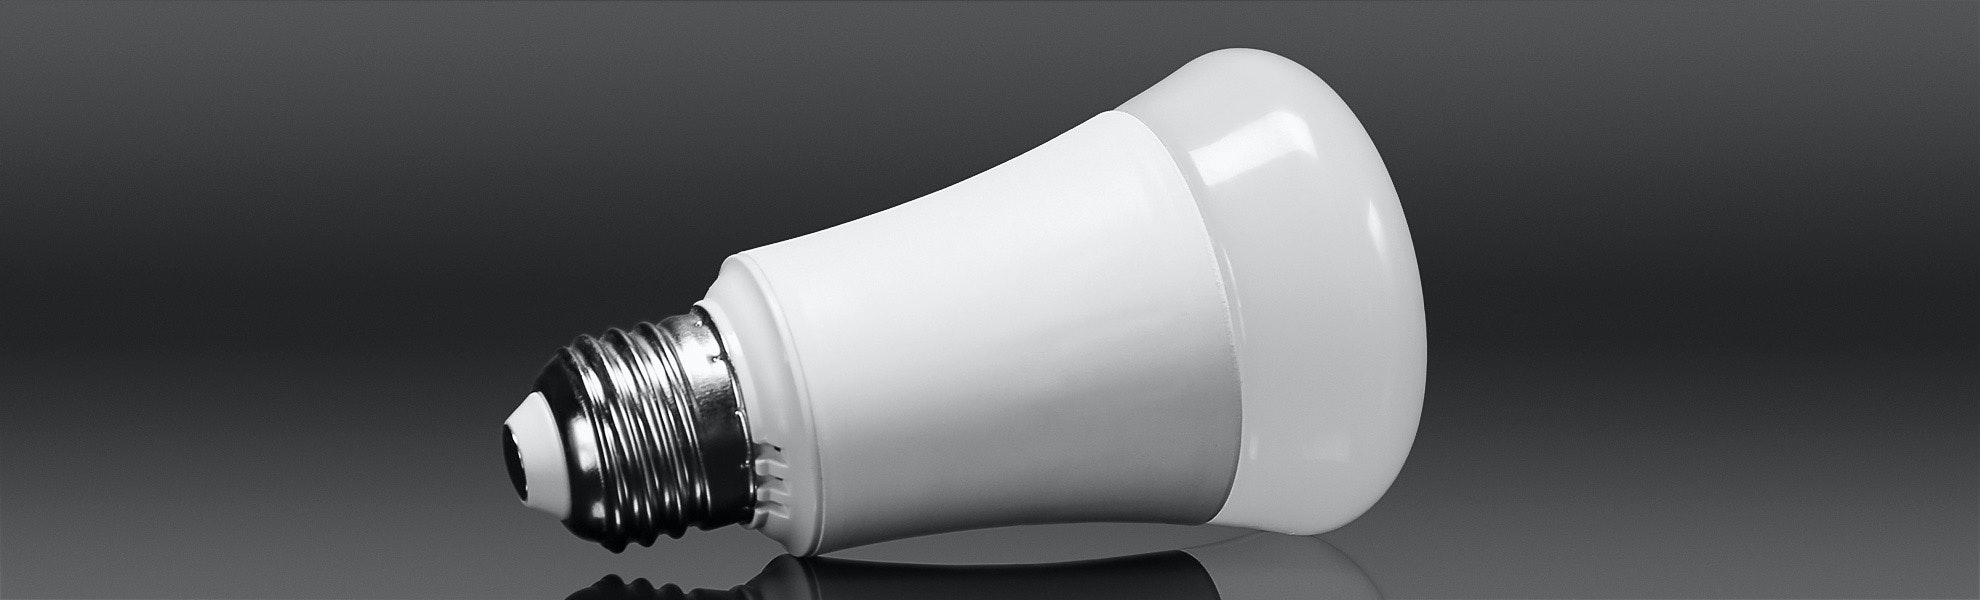 Pro HT RGB LED Bluetooth Smart Bulb